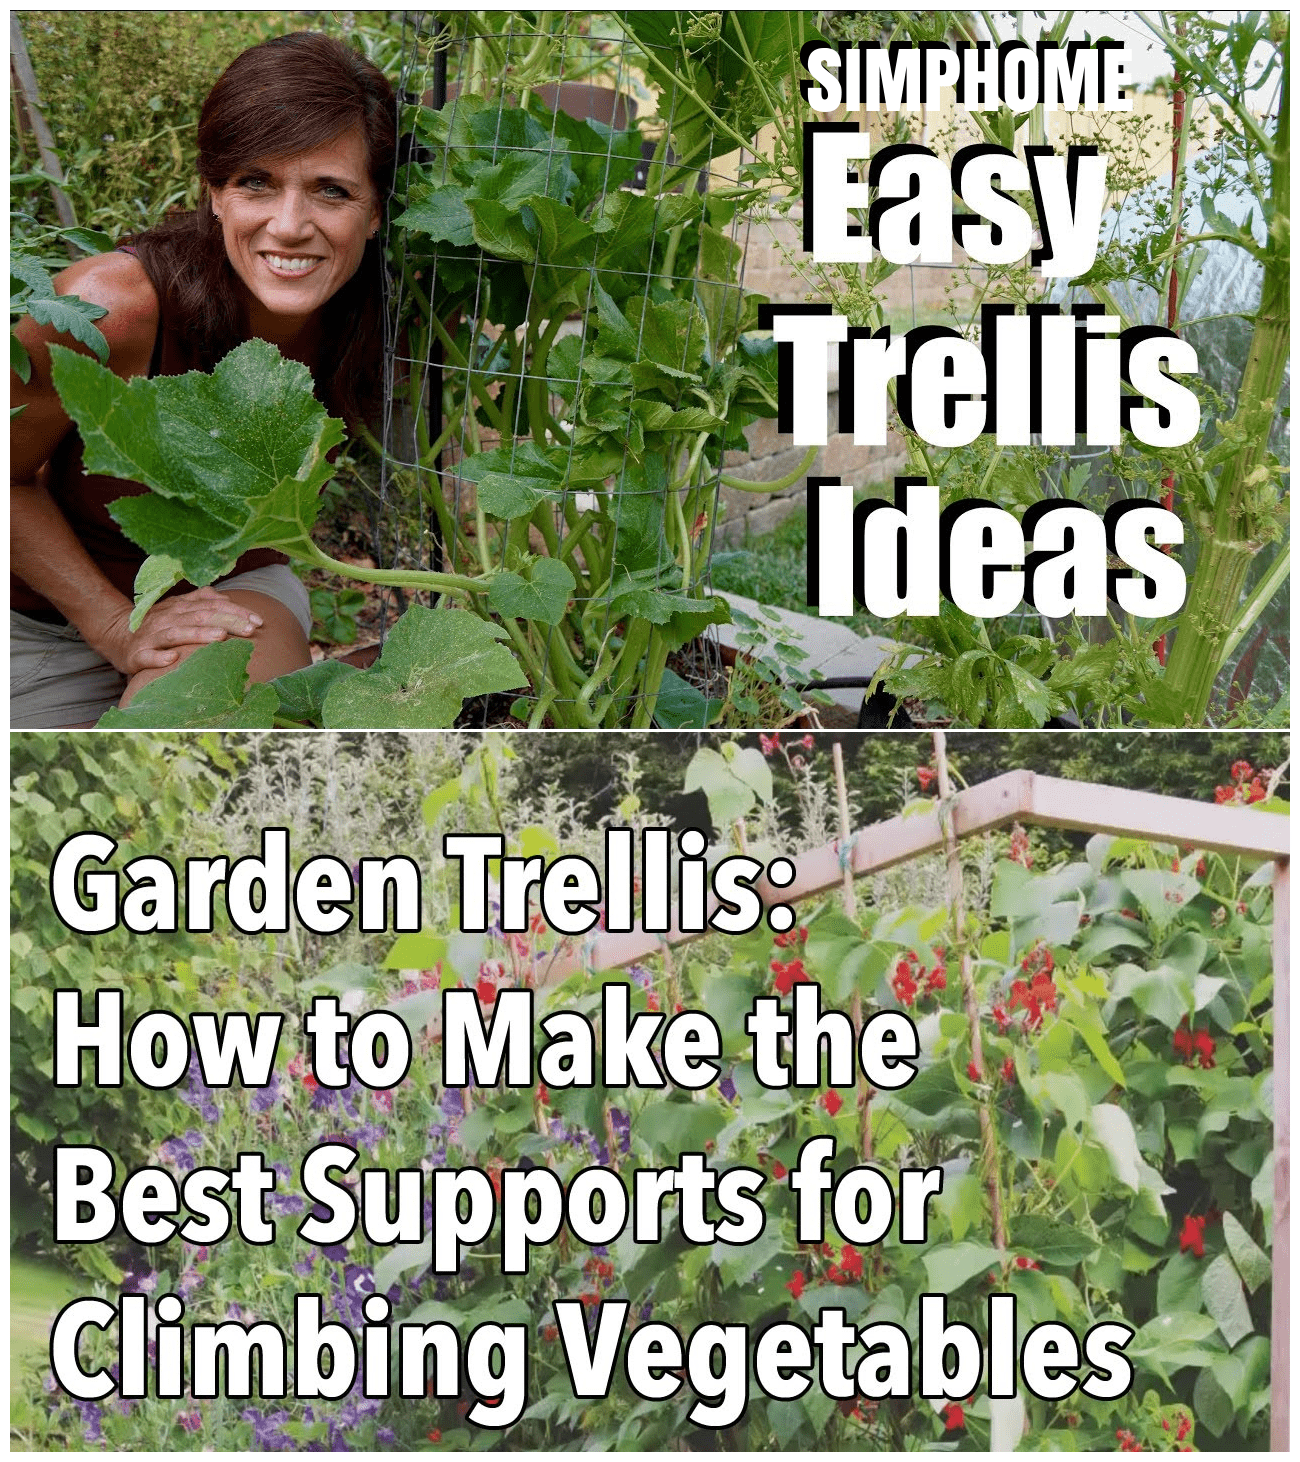 Simphome.com an easy trellis ideas climbing vegetable supports for 2020 2021 2022